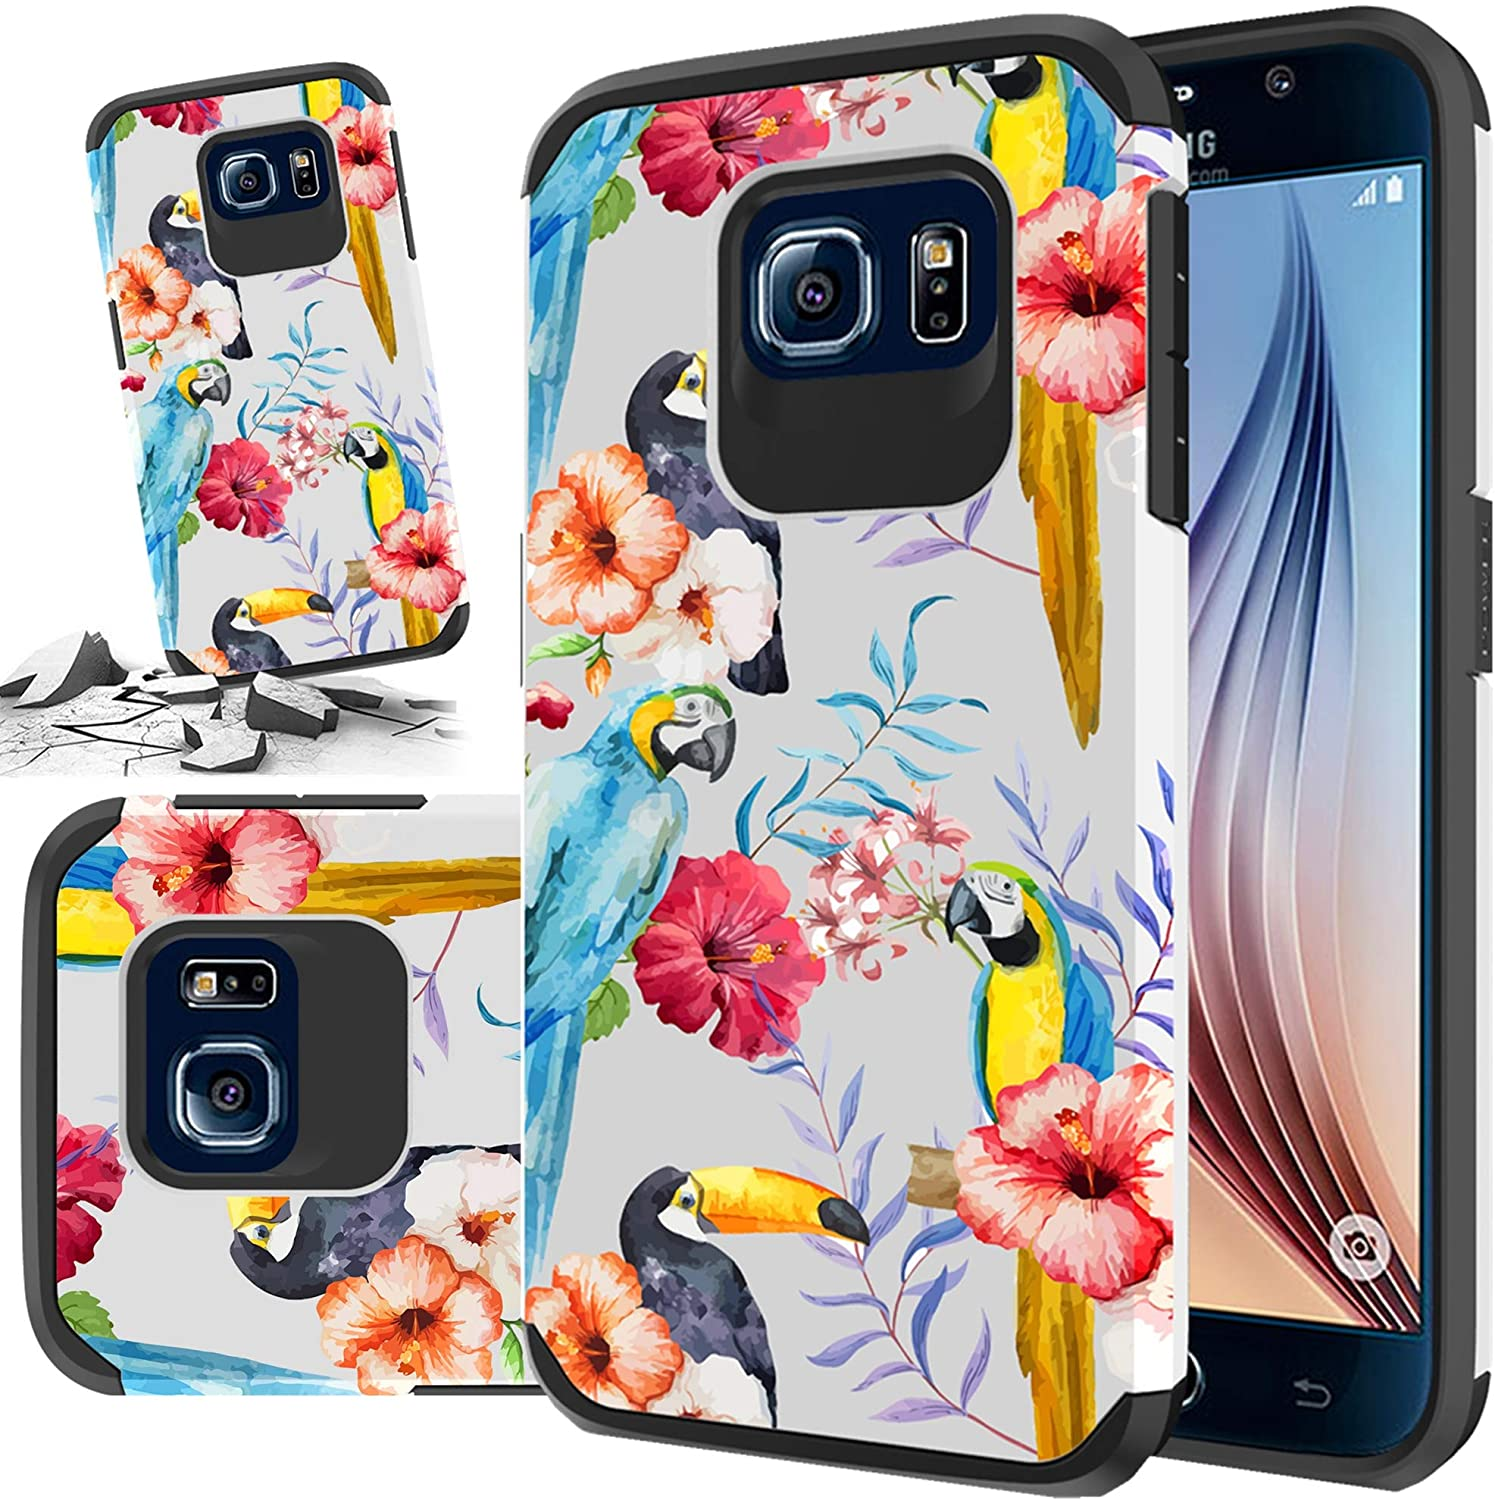 Phone Case Compatible with [ Samsung Galaxy S6 ] [ Storm Buy ] Shockproof 3D Textured Vibrant Protective Phone Case Cover for Galaxy S6 (Bird)